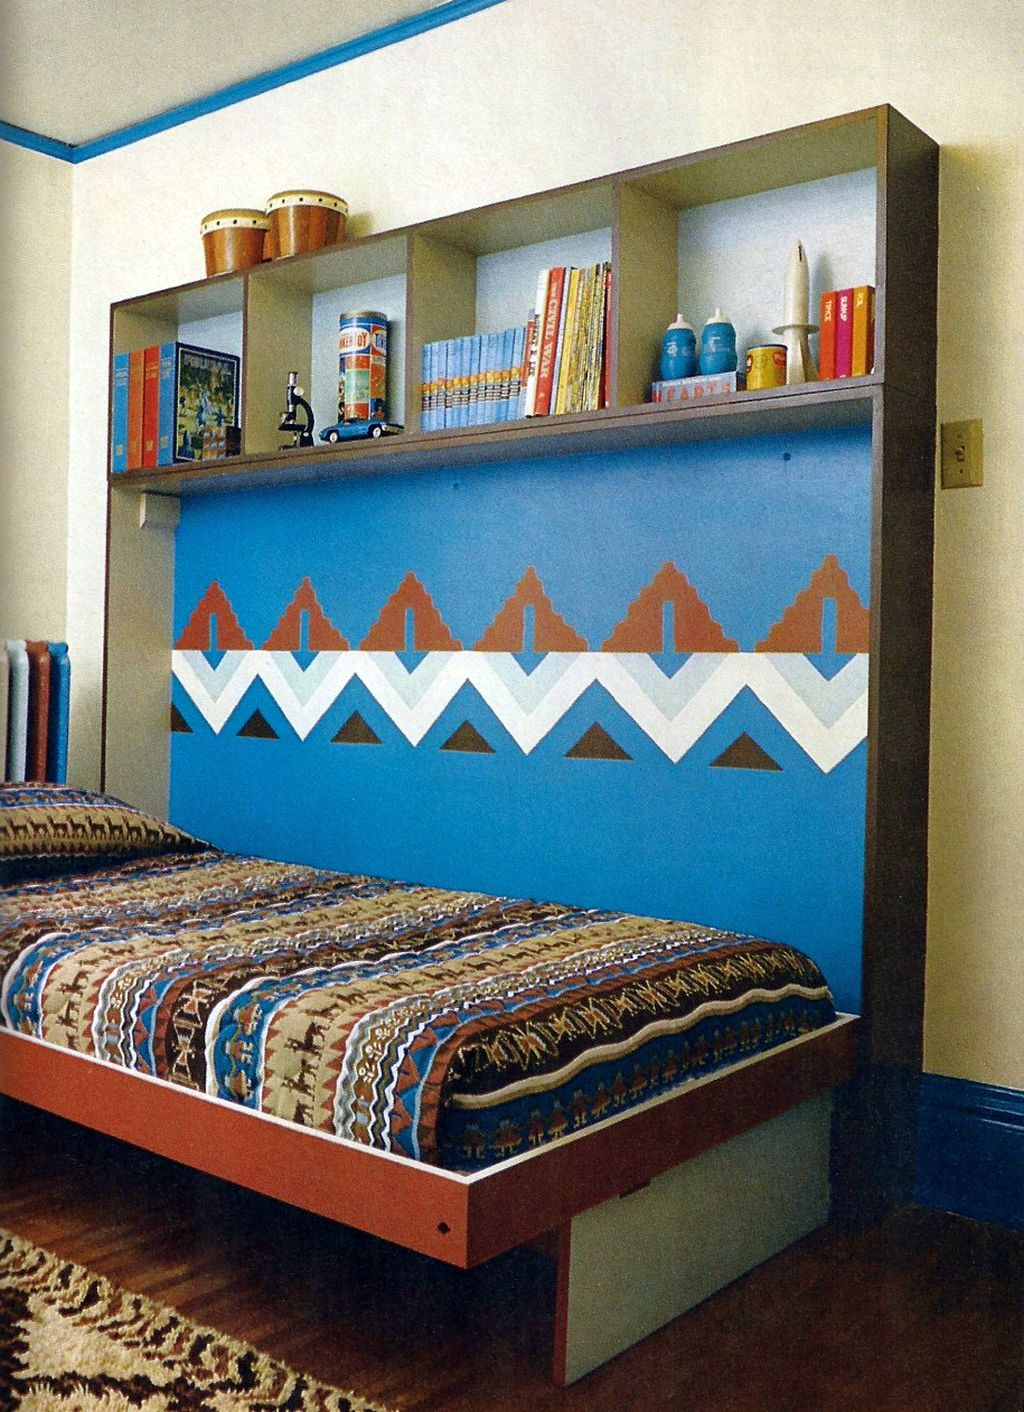 Bedroom Ideas Ethnic murphy bed design ideas for small rooms in blue and ethnic pattern